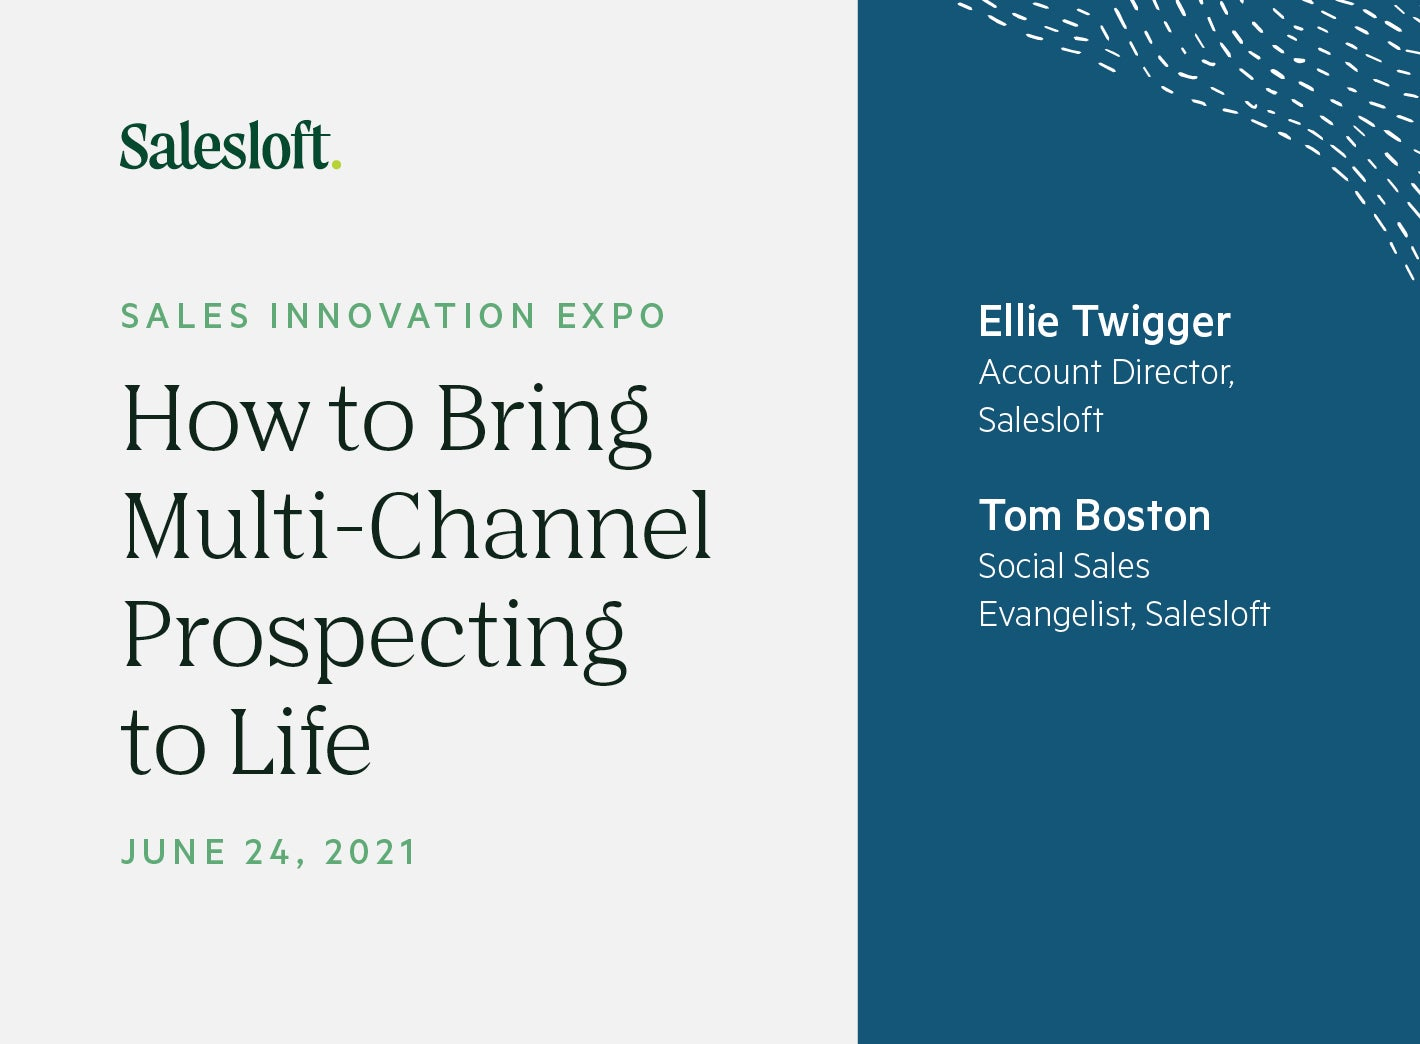 How To Bring Multi-Channel Prospecting to Life